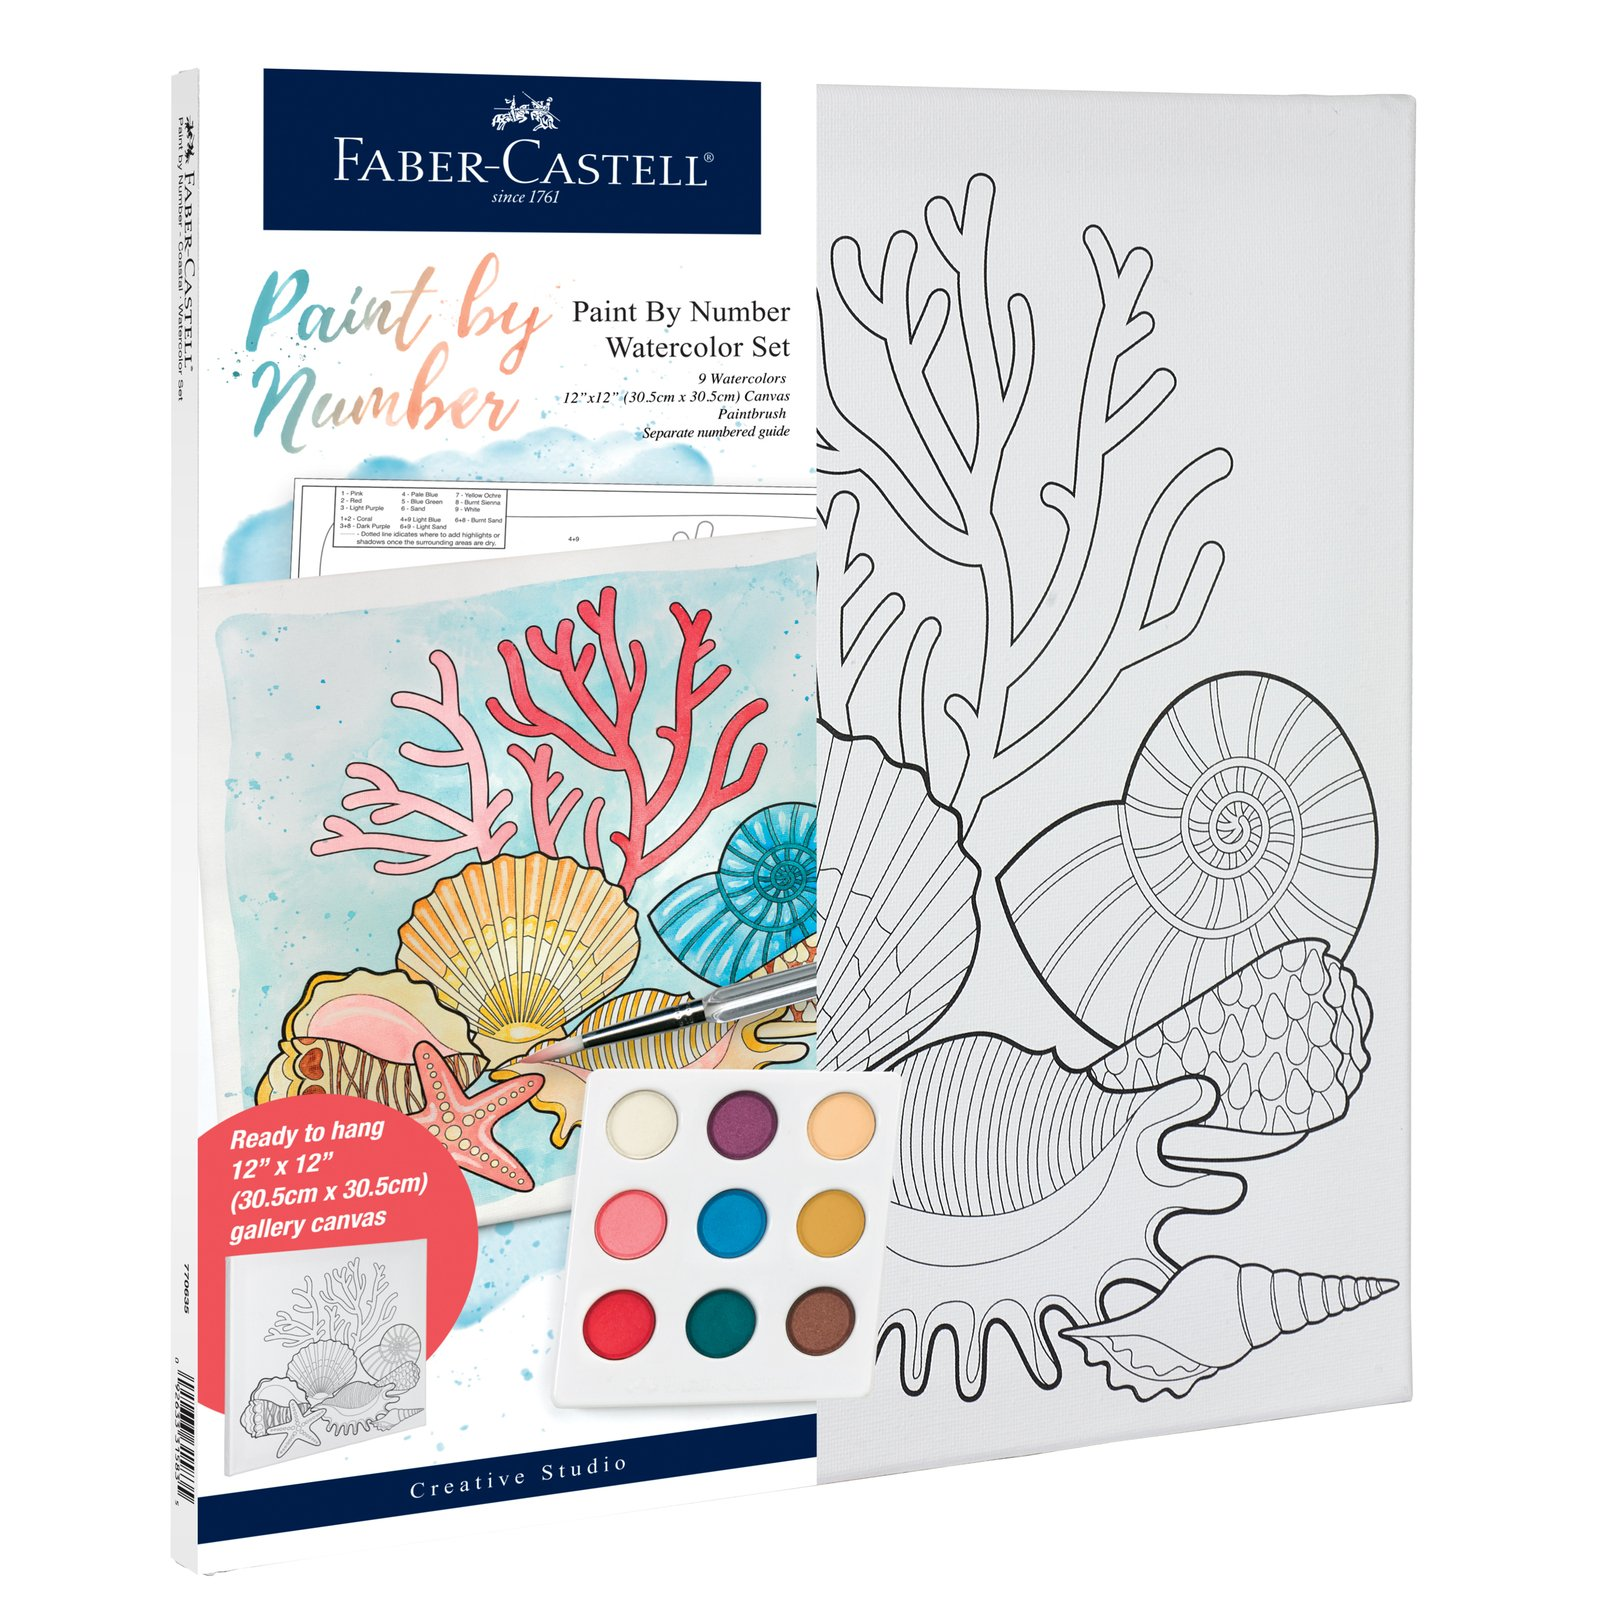 Paint By Number Watercolor Sets